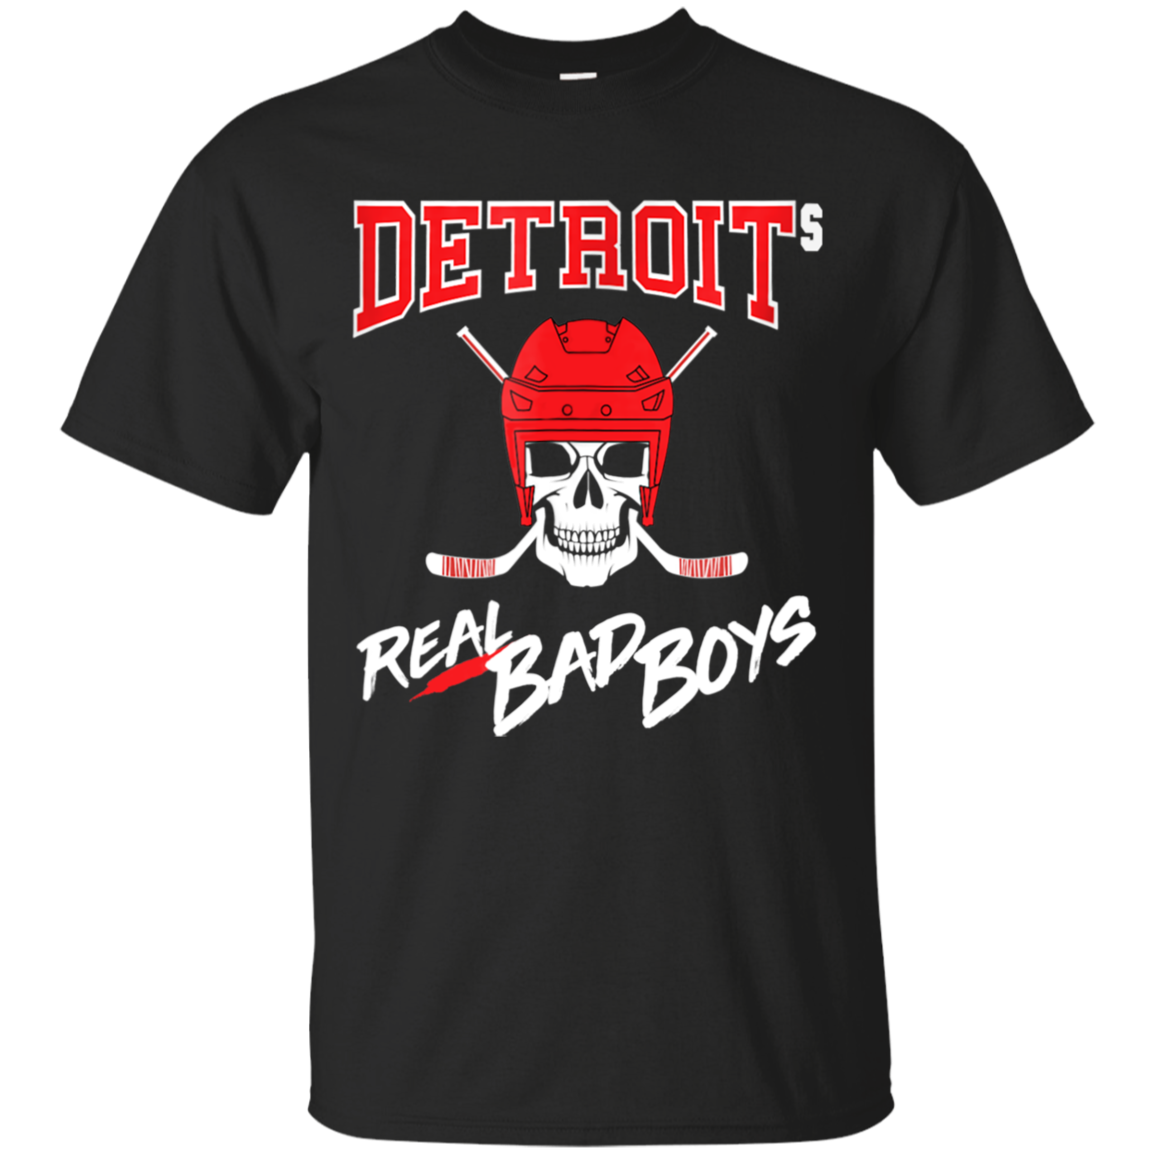 Detroits Real Bad Boys Detroit Hockey Bob Probert Shirt